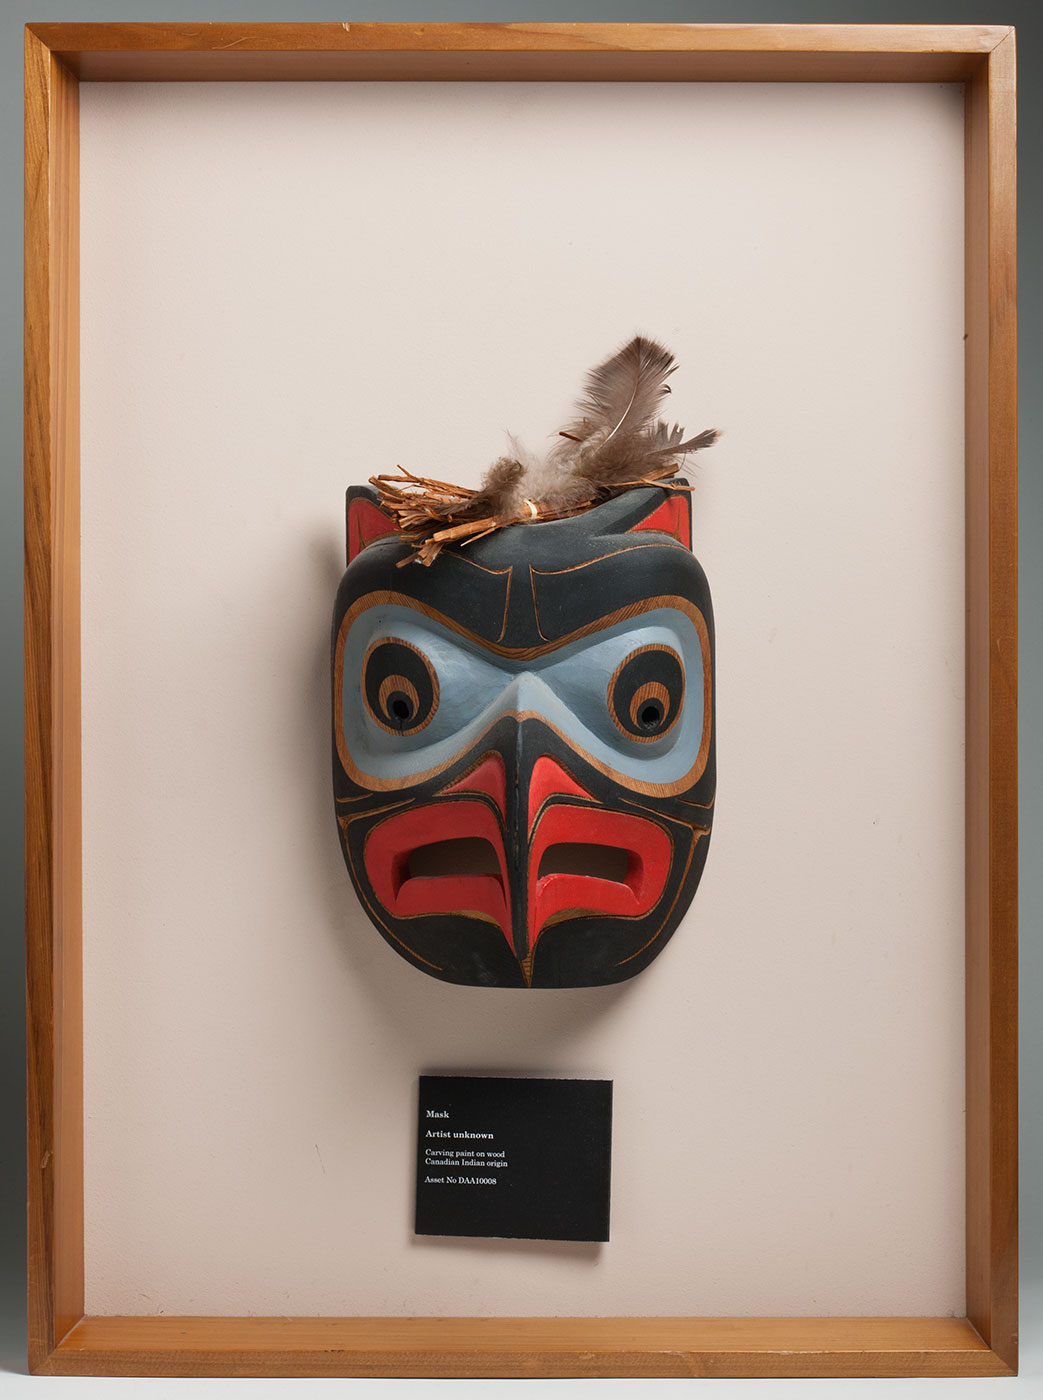 A carved and painted mask with feathers at the top. The mask sits in a light timber frame with white backing board. - click to view larger image